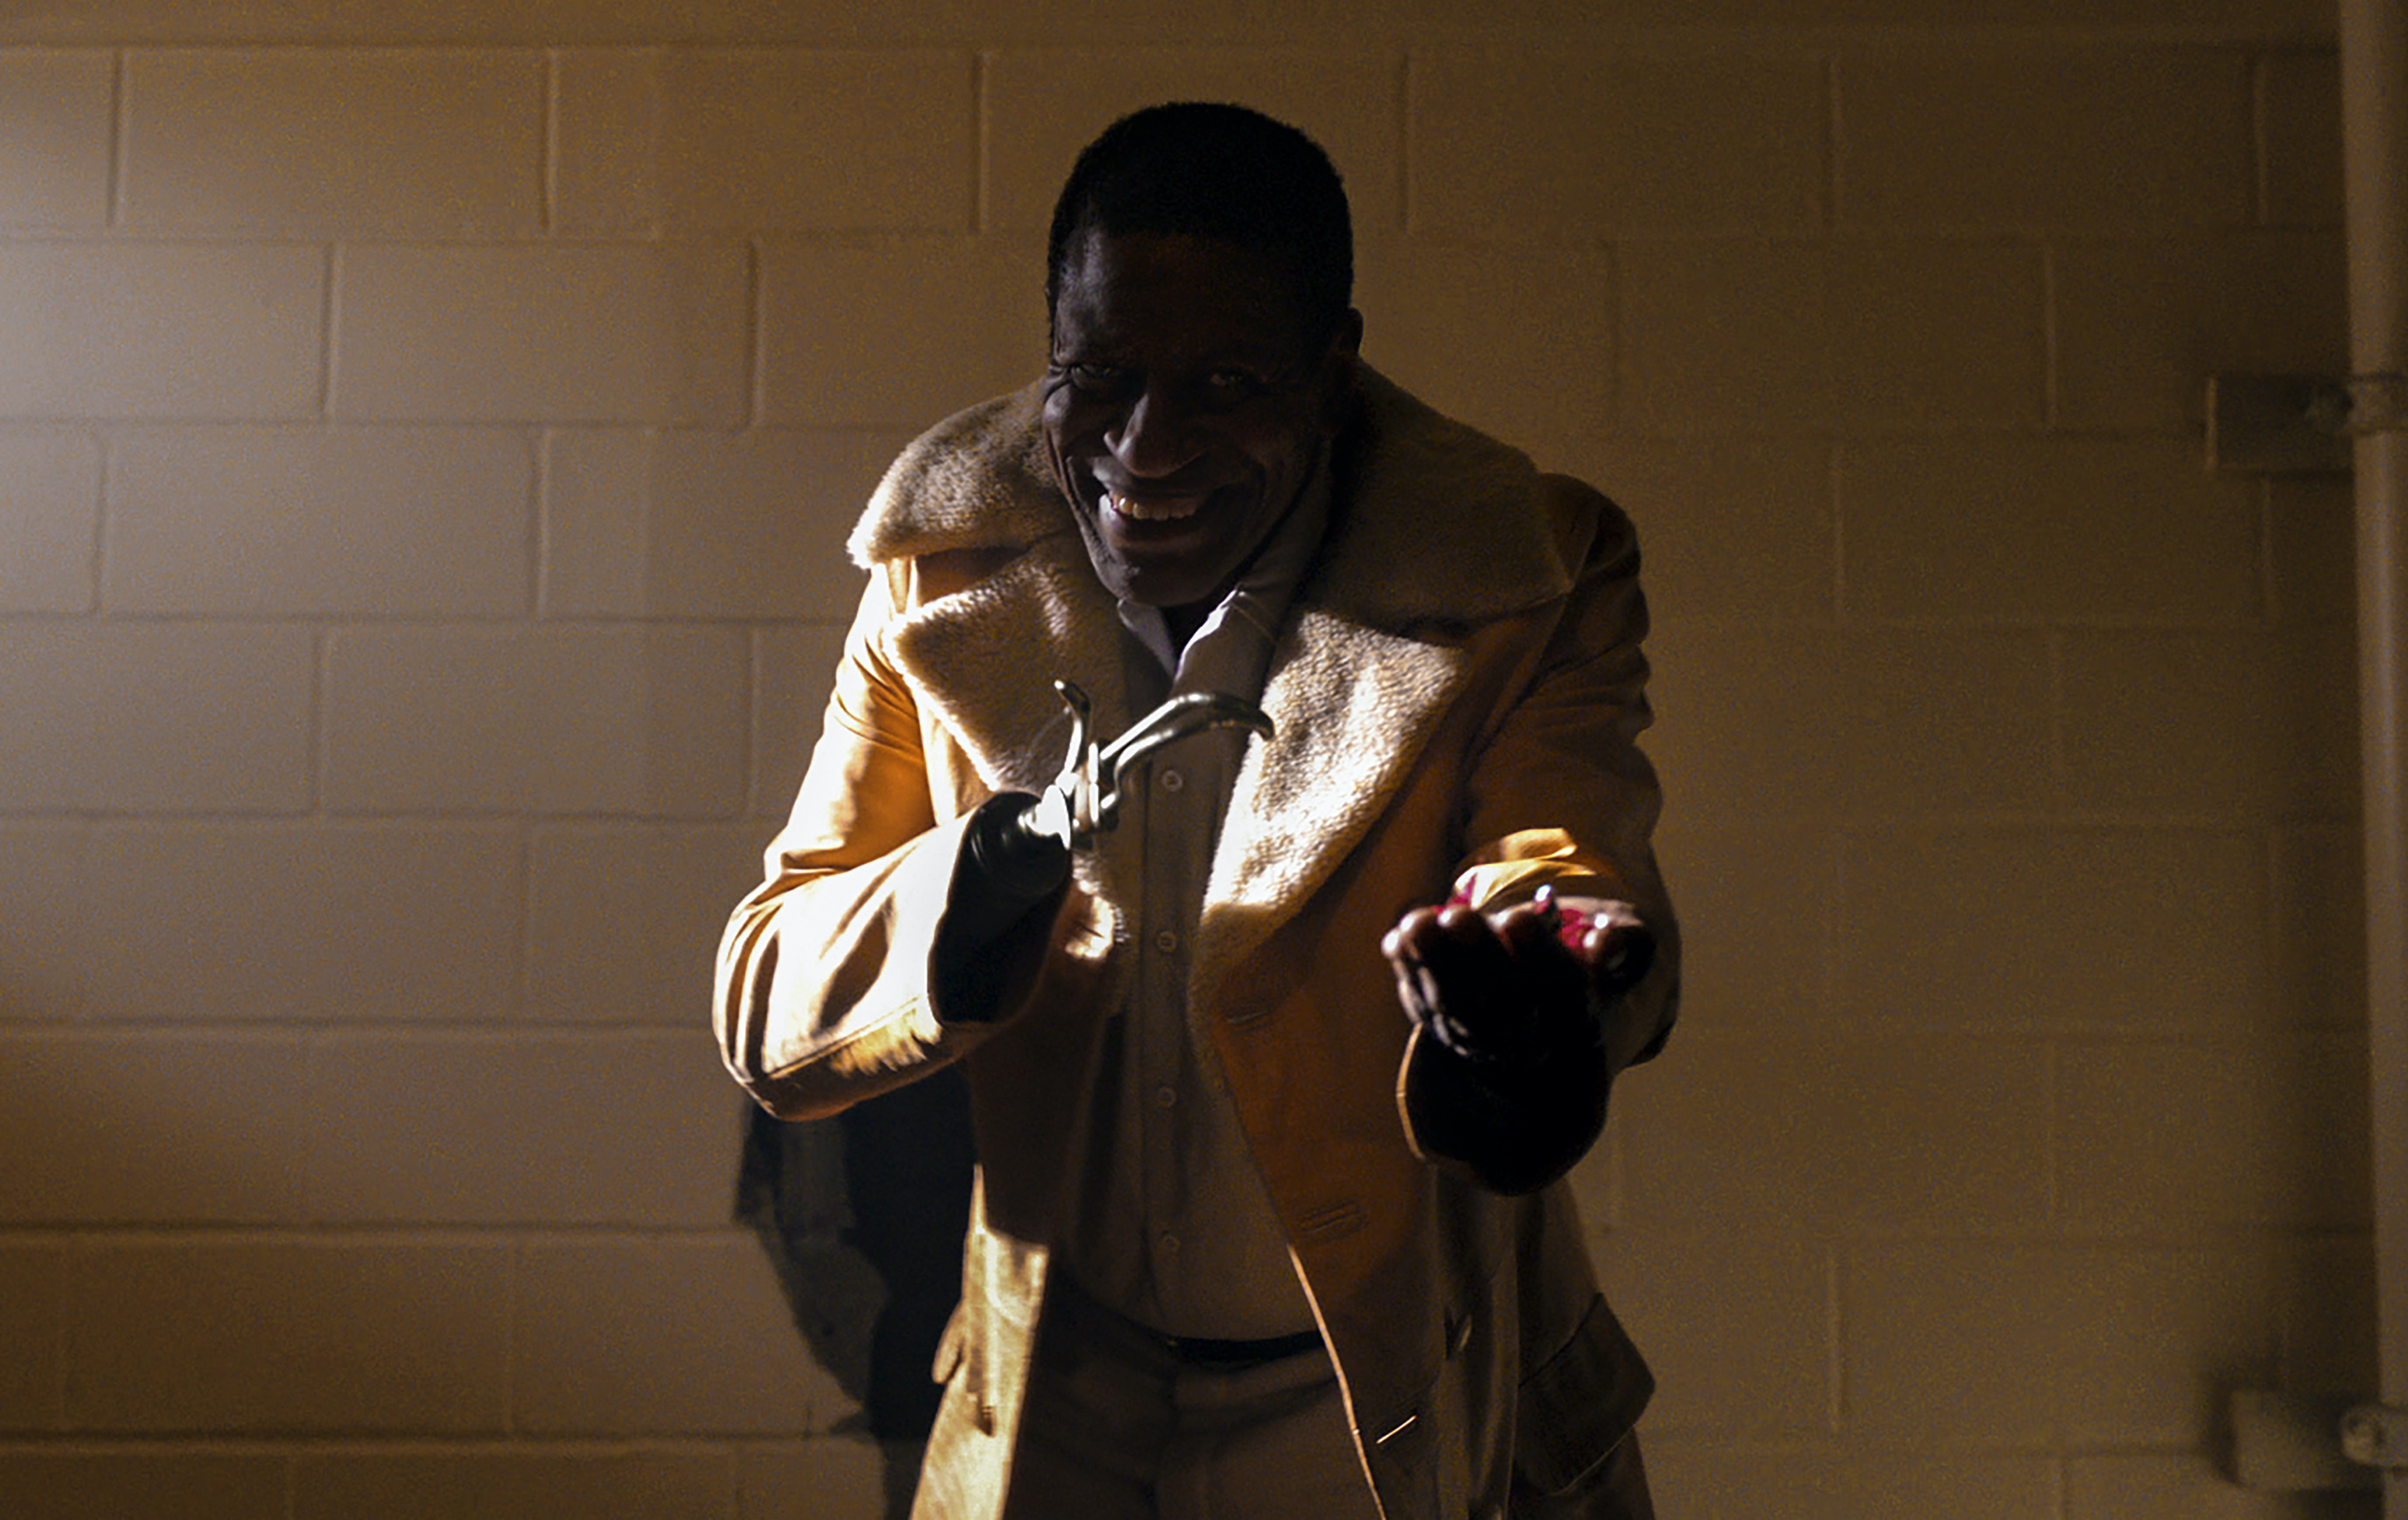 Michael Hargrove as Candyman in the 2021 Candyman